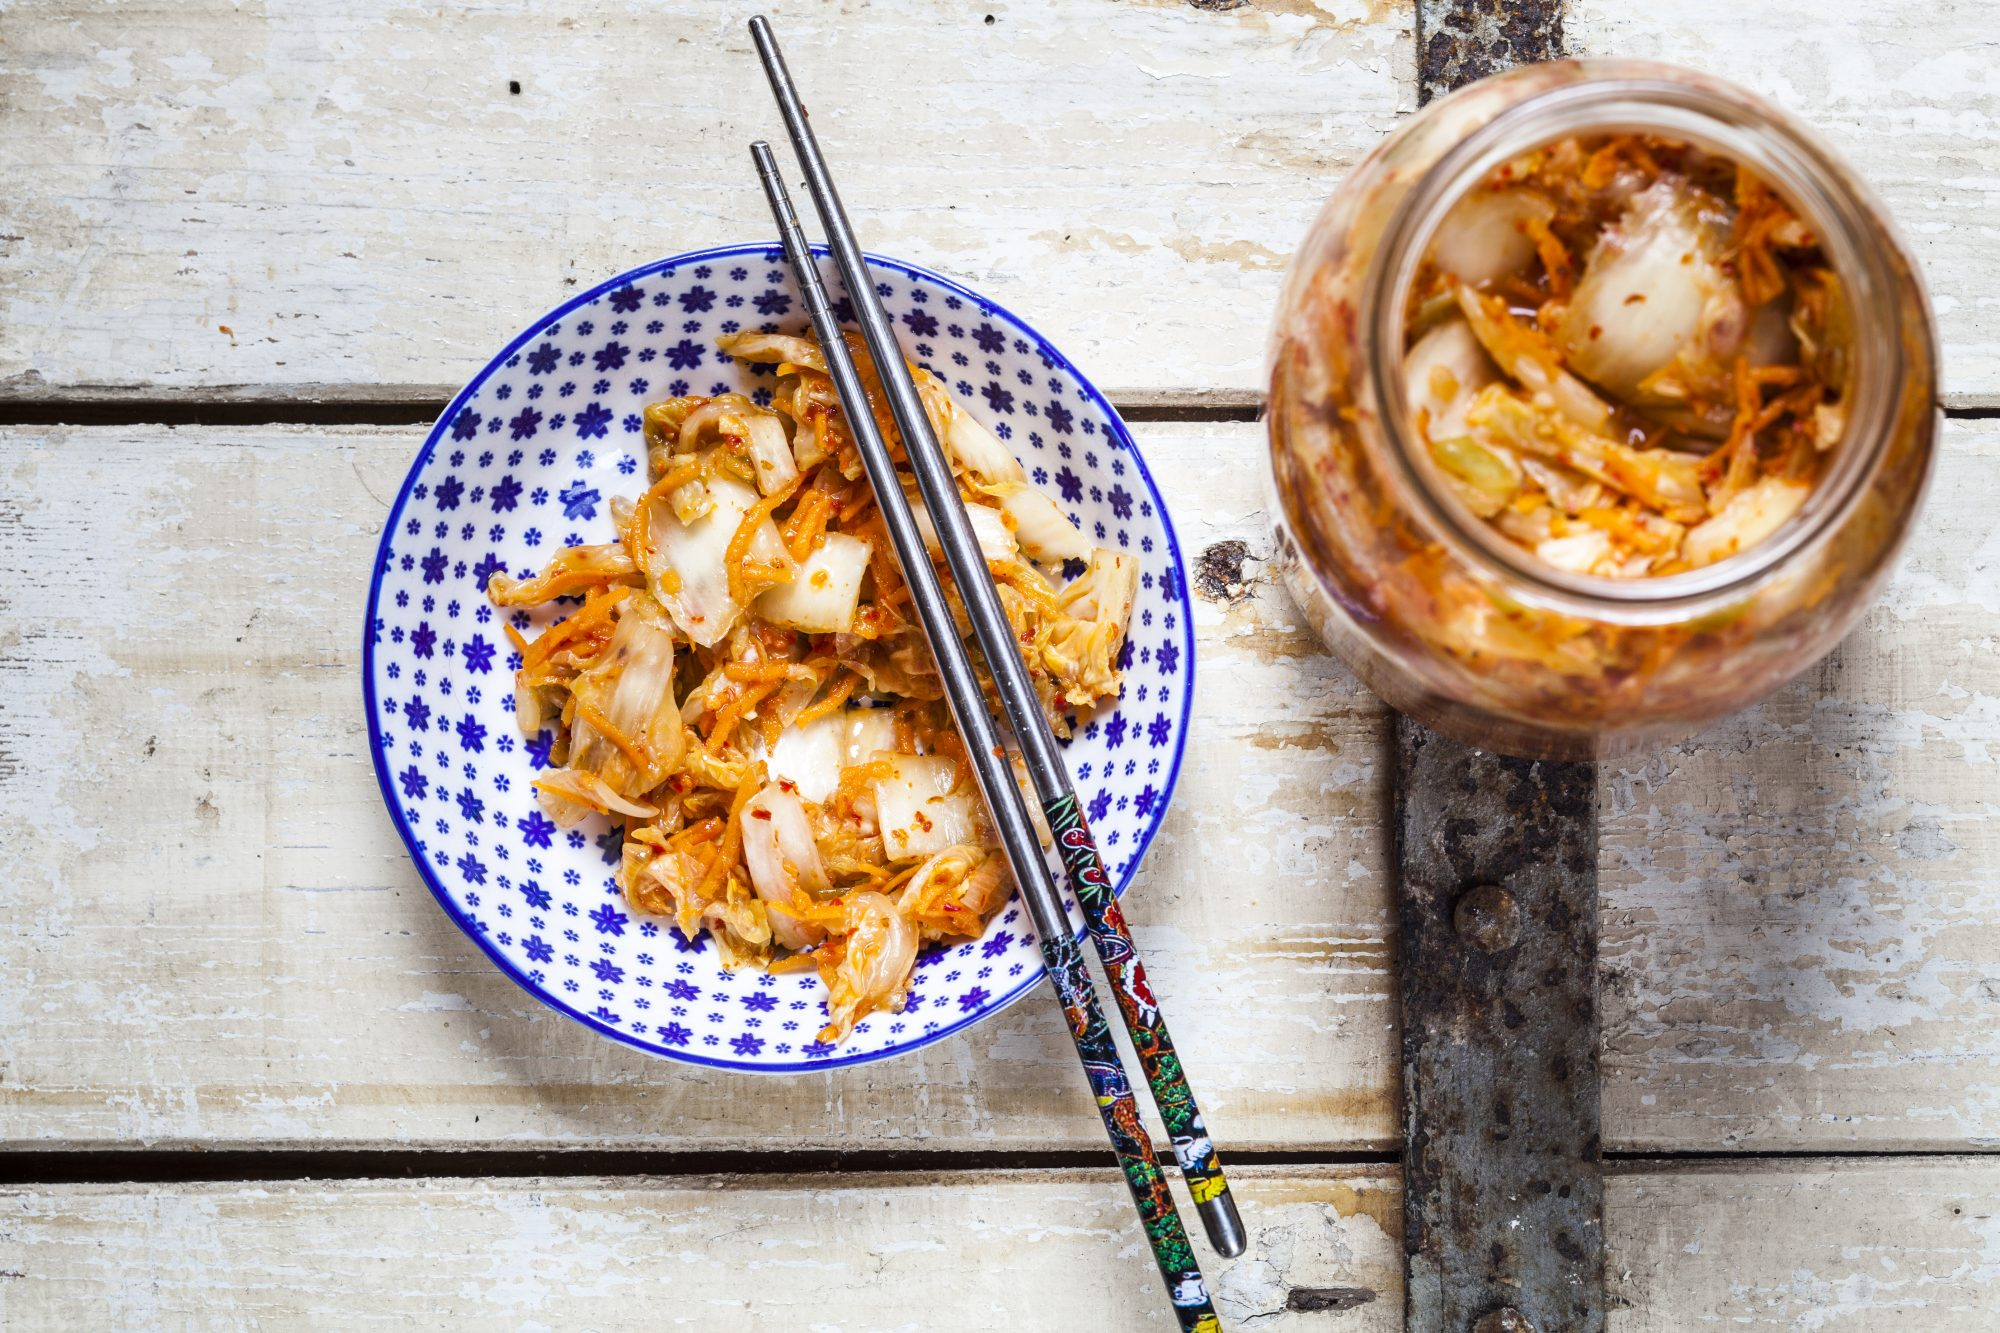 Homemade korean kimchi with chinese cabbage, scallions and carrots